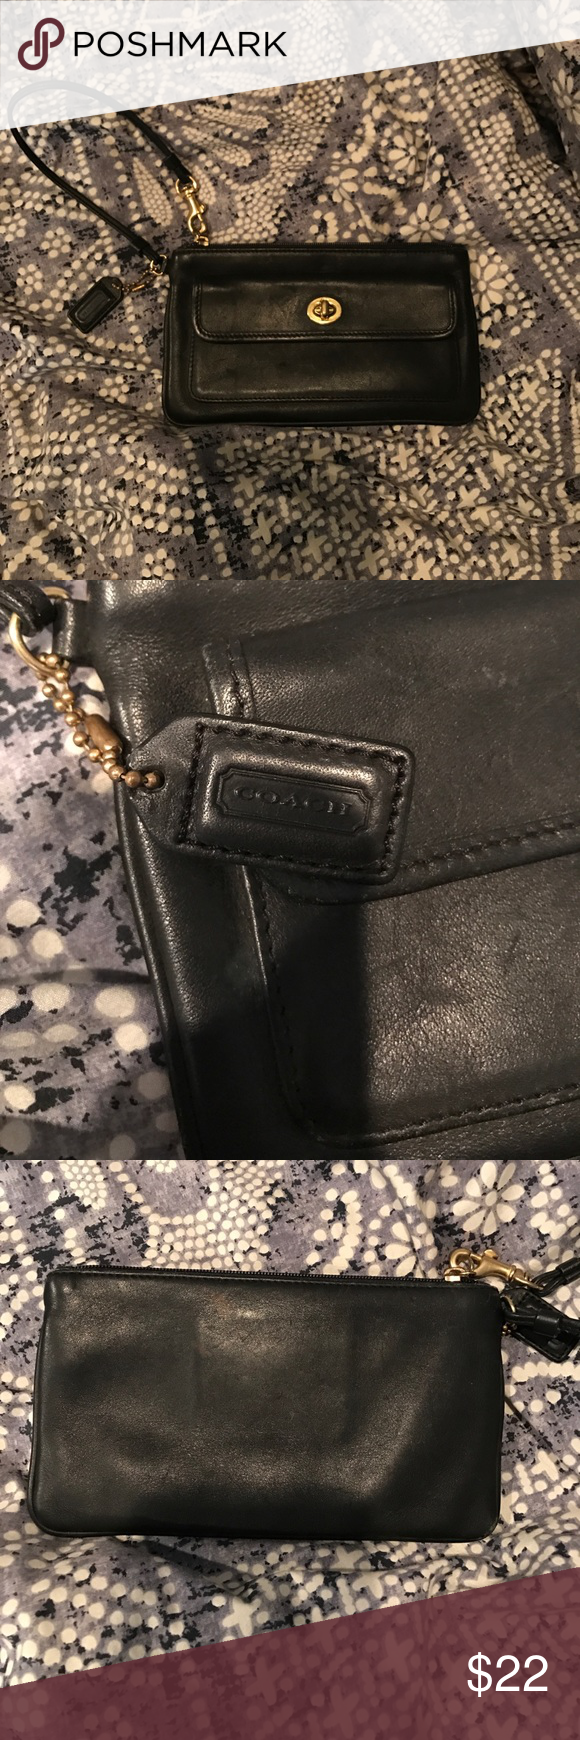 Coach wristlet Good condition. Slight stain on back as seen in picture. Removable strap Coach Bags Clutches & Wristlets